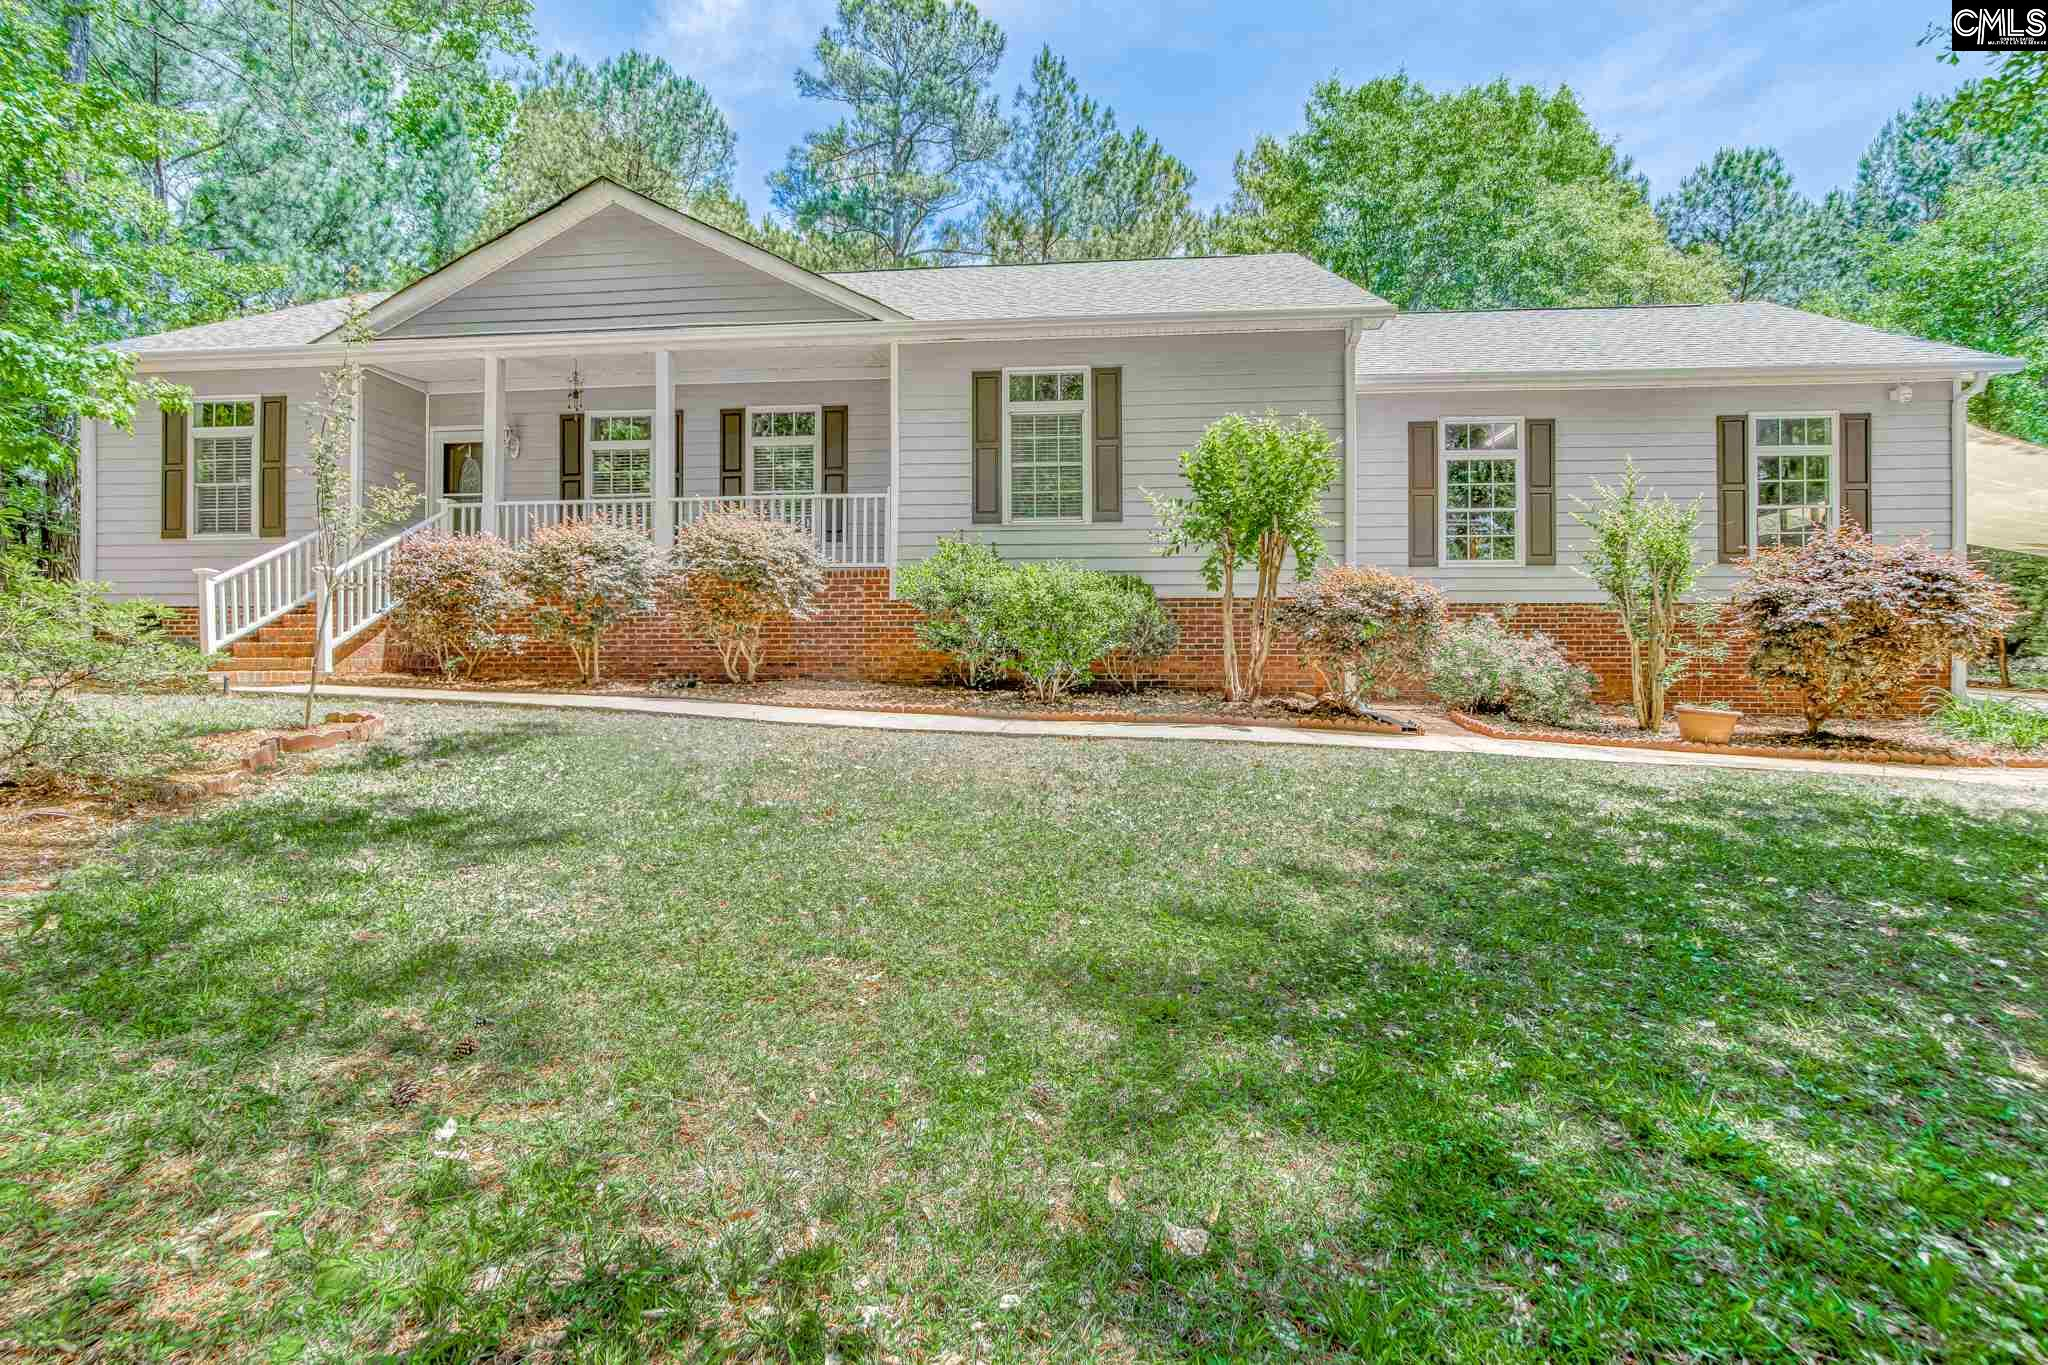 151 Williams Wood Prosperity, SC 29127